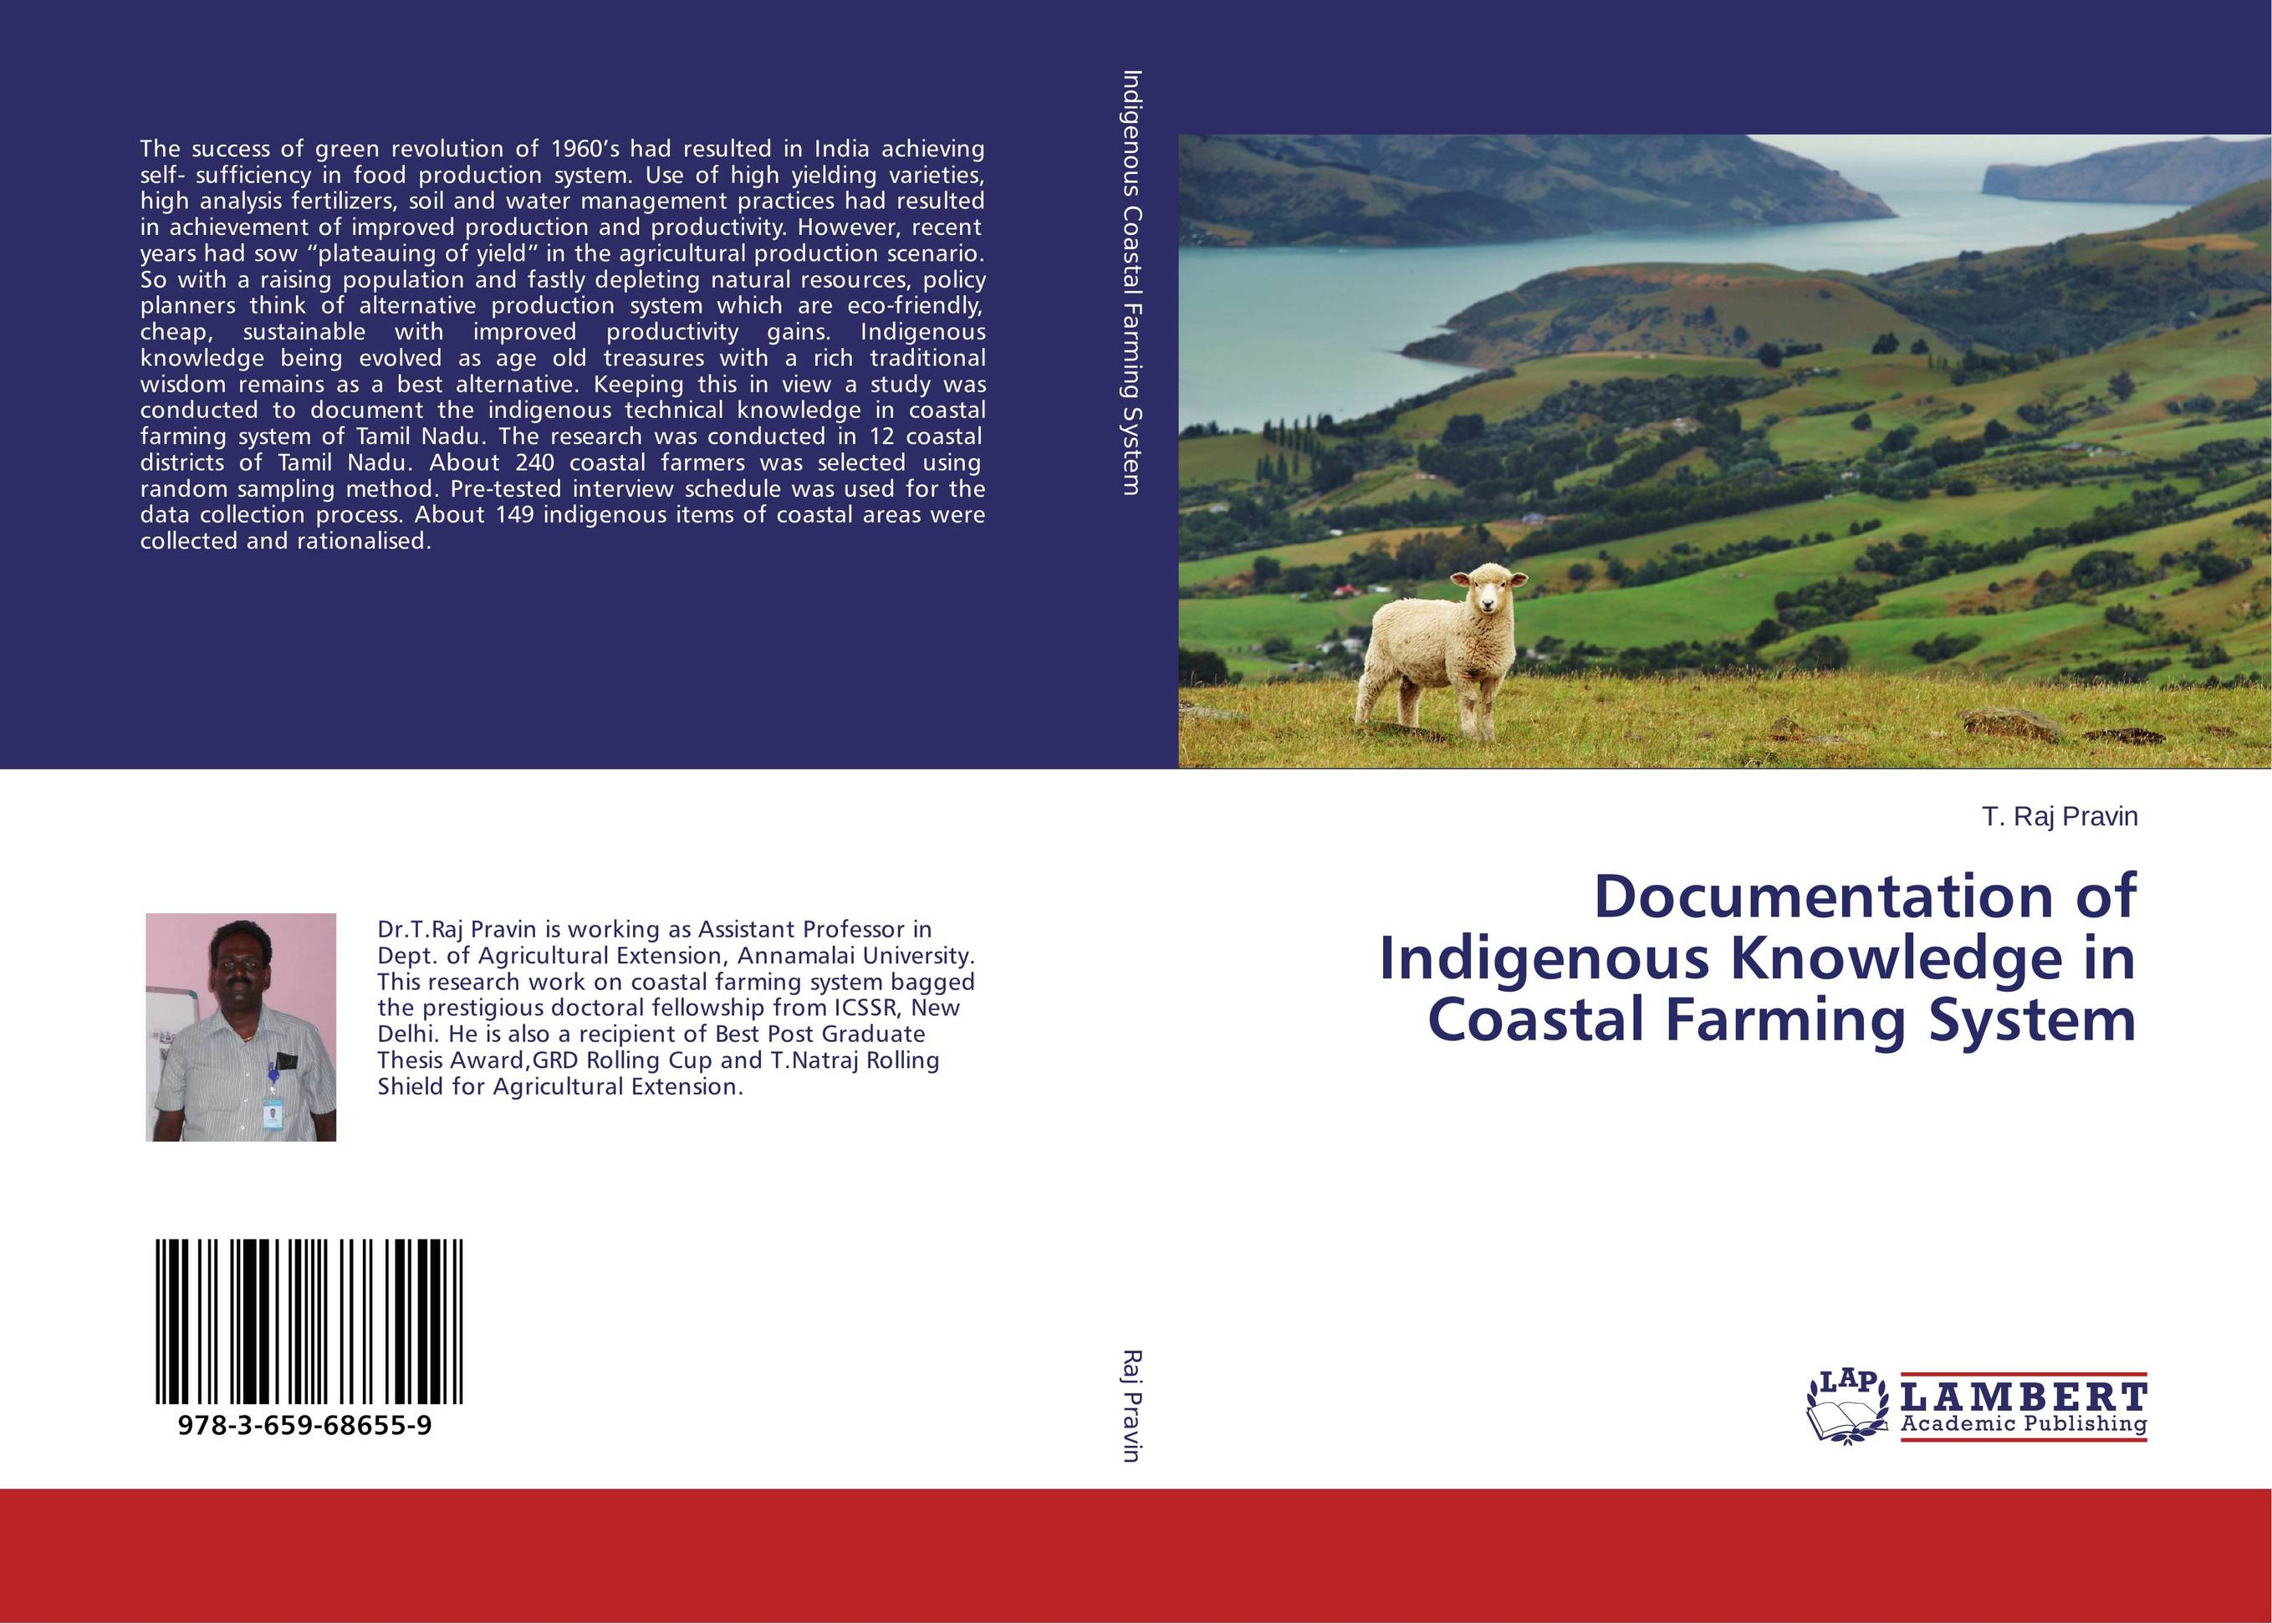 Documentation of Indigenous Knowledge in Coastal Farming System survival of local knowledge about management of natural resources